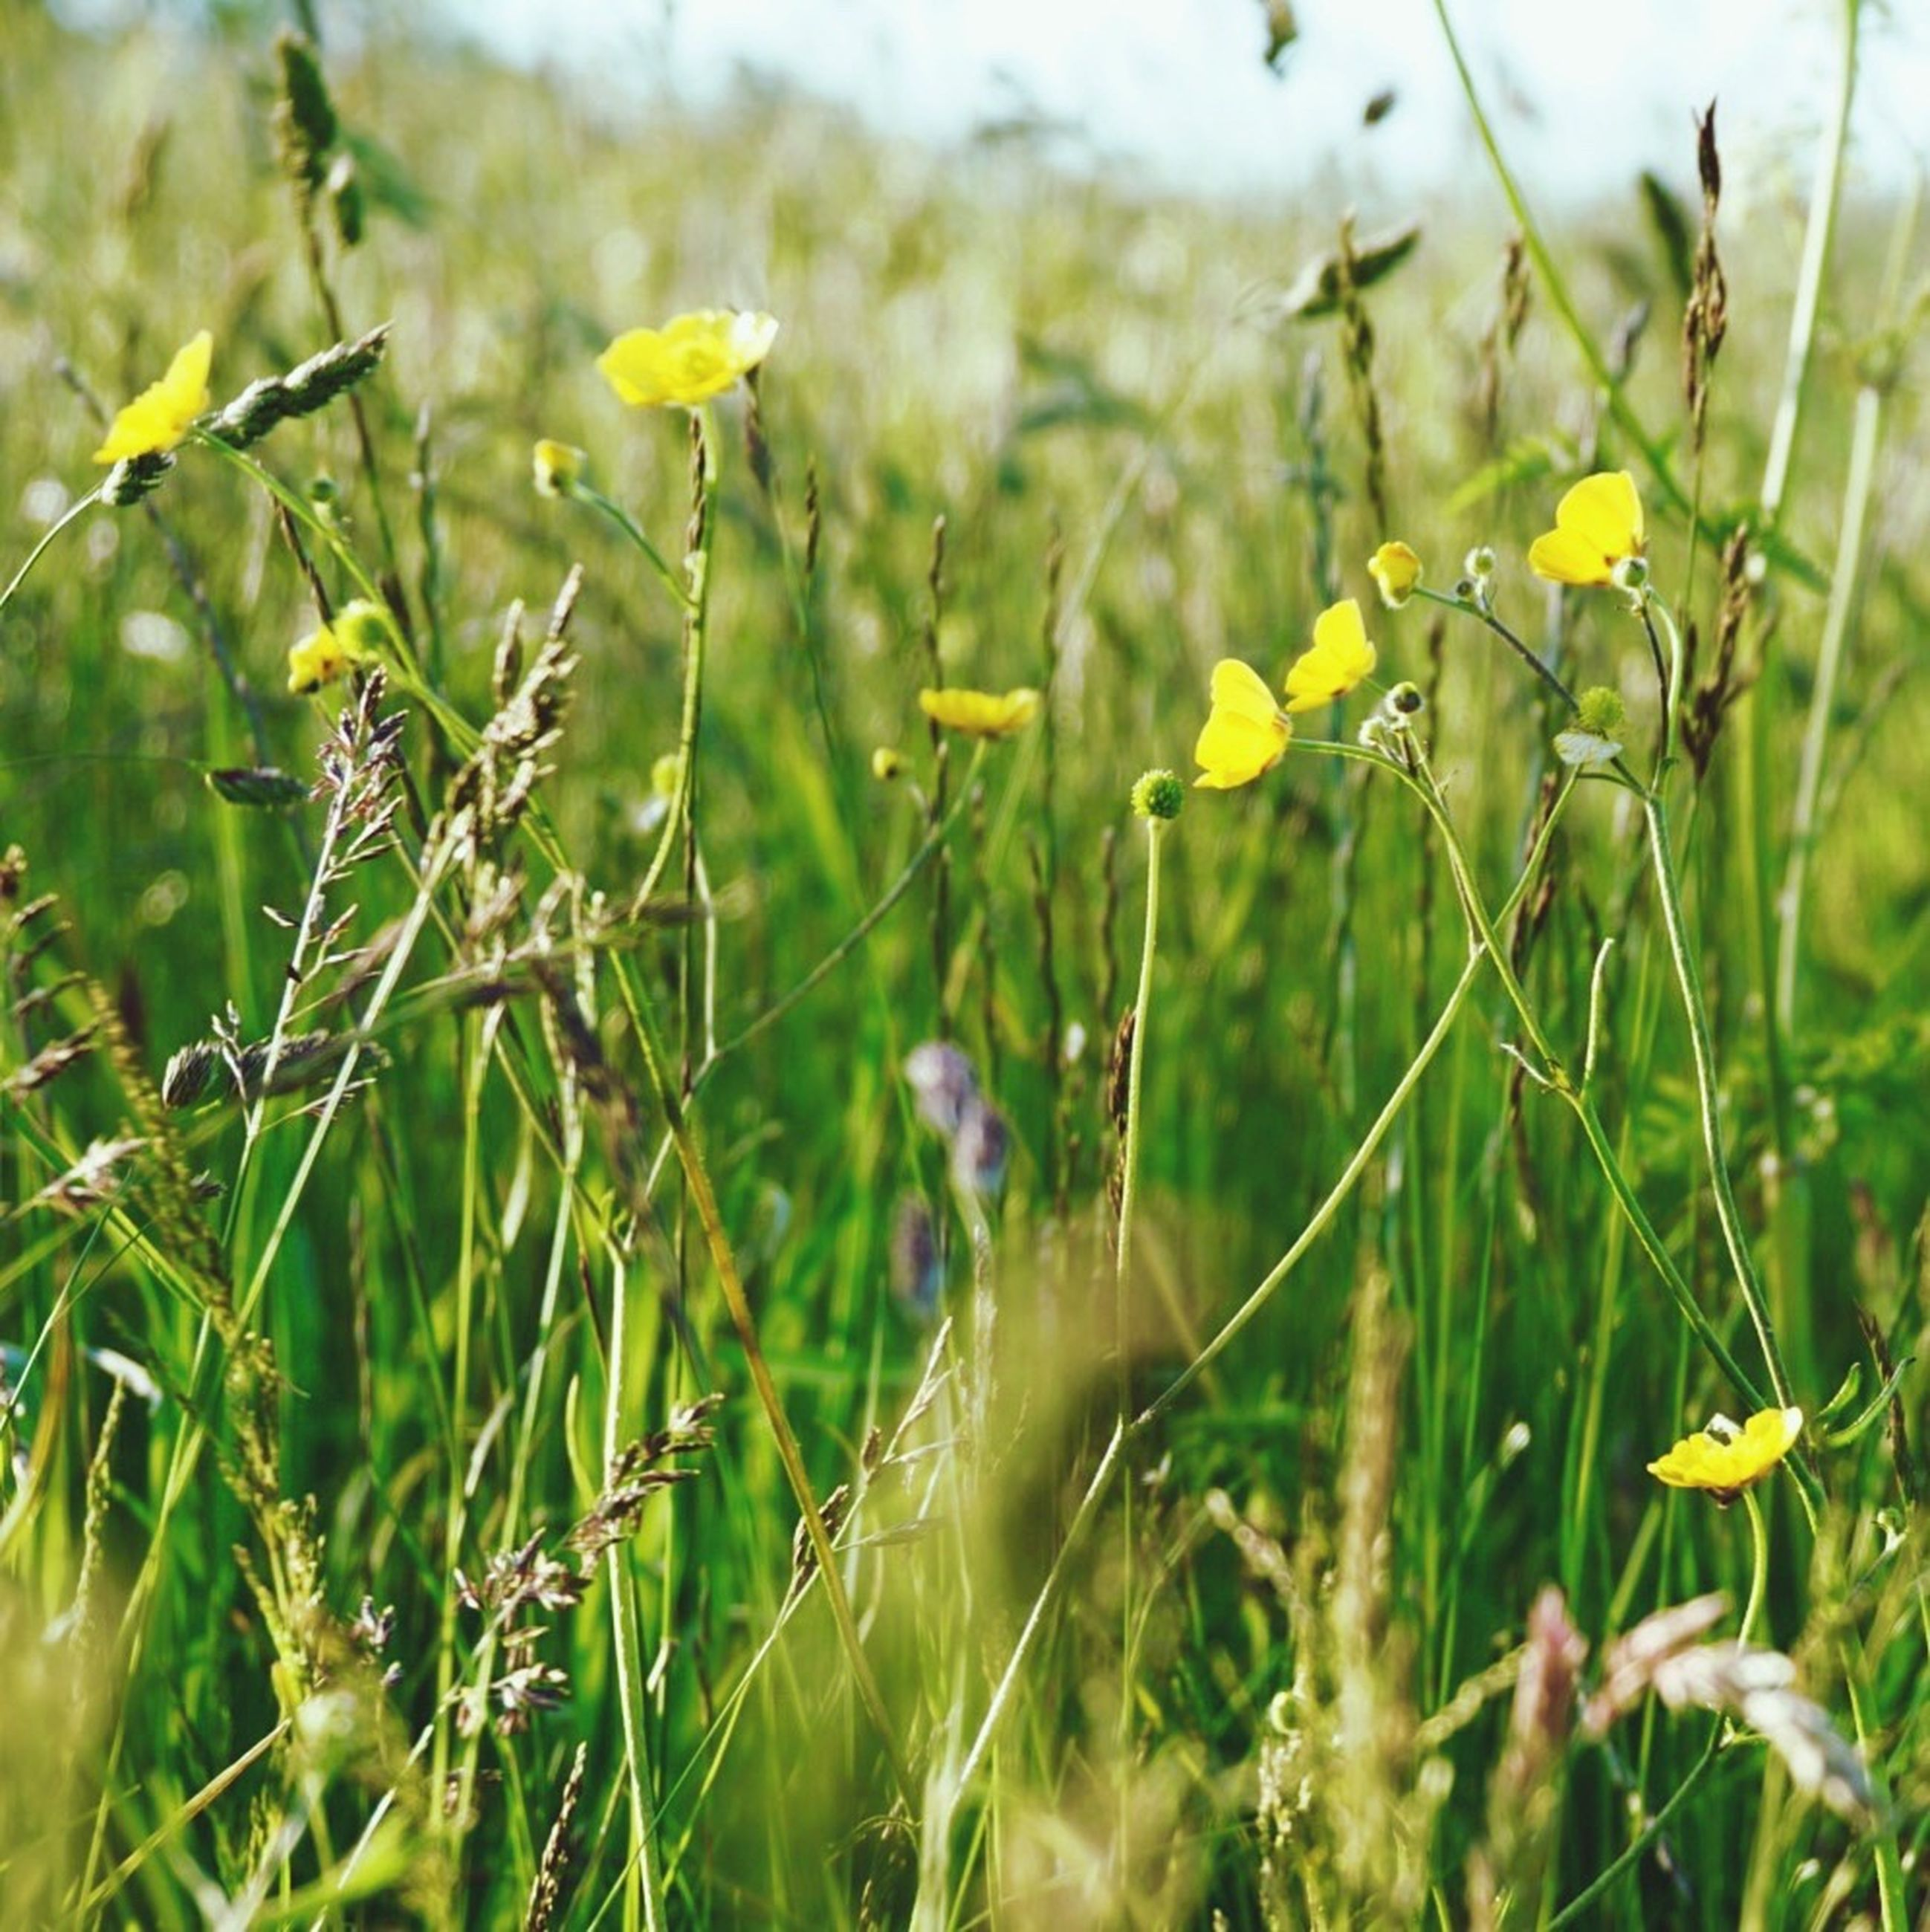 growth, flower, plant, freshness, field, nature, focus on foreground, beauty in nature, yellow, close-up, stem, fragility, grass, selective focus, tranquility, day, green color, outdoors, wildflower, growing